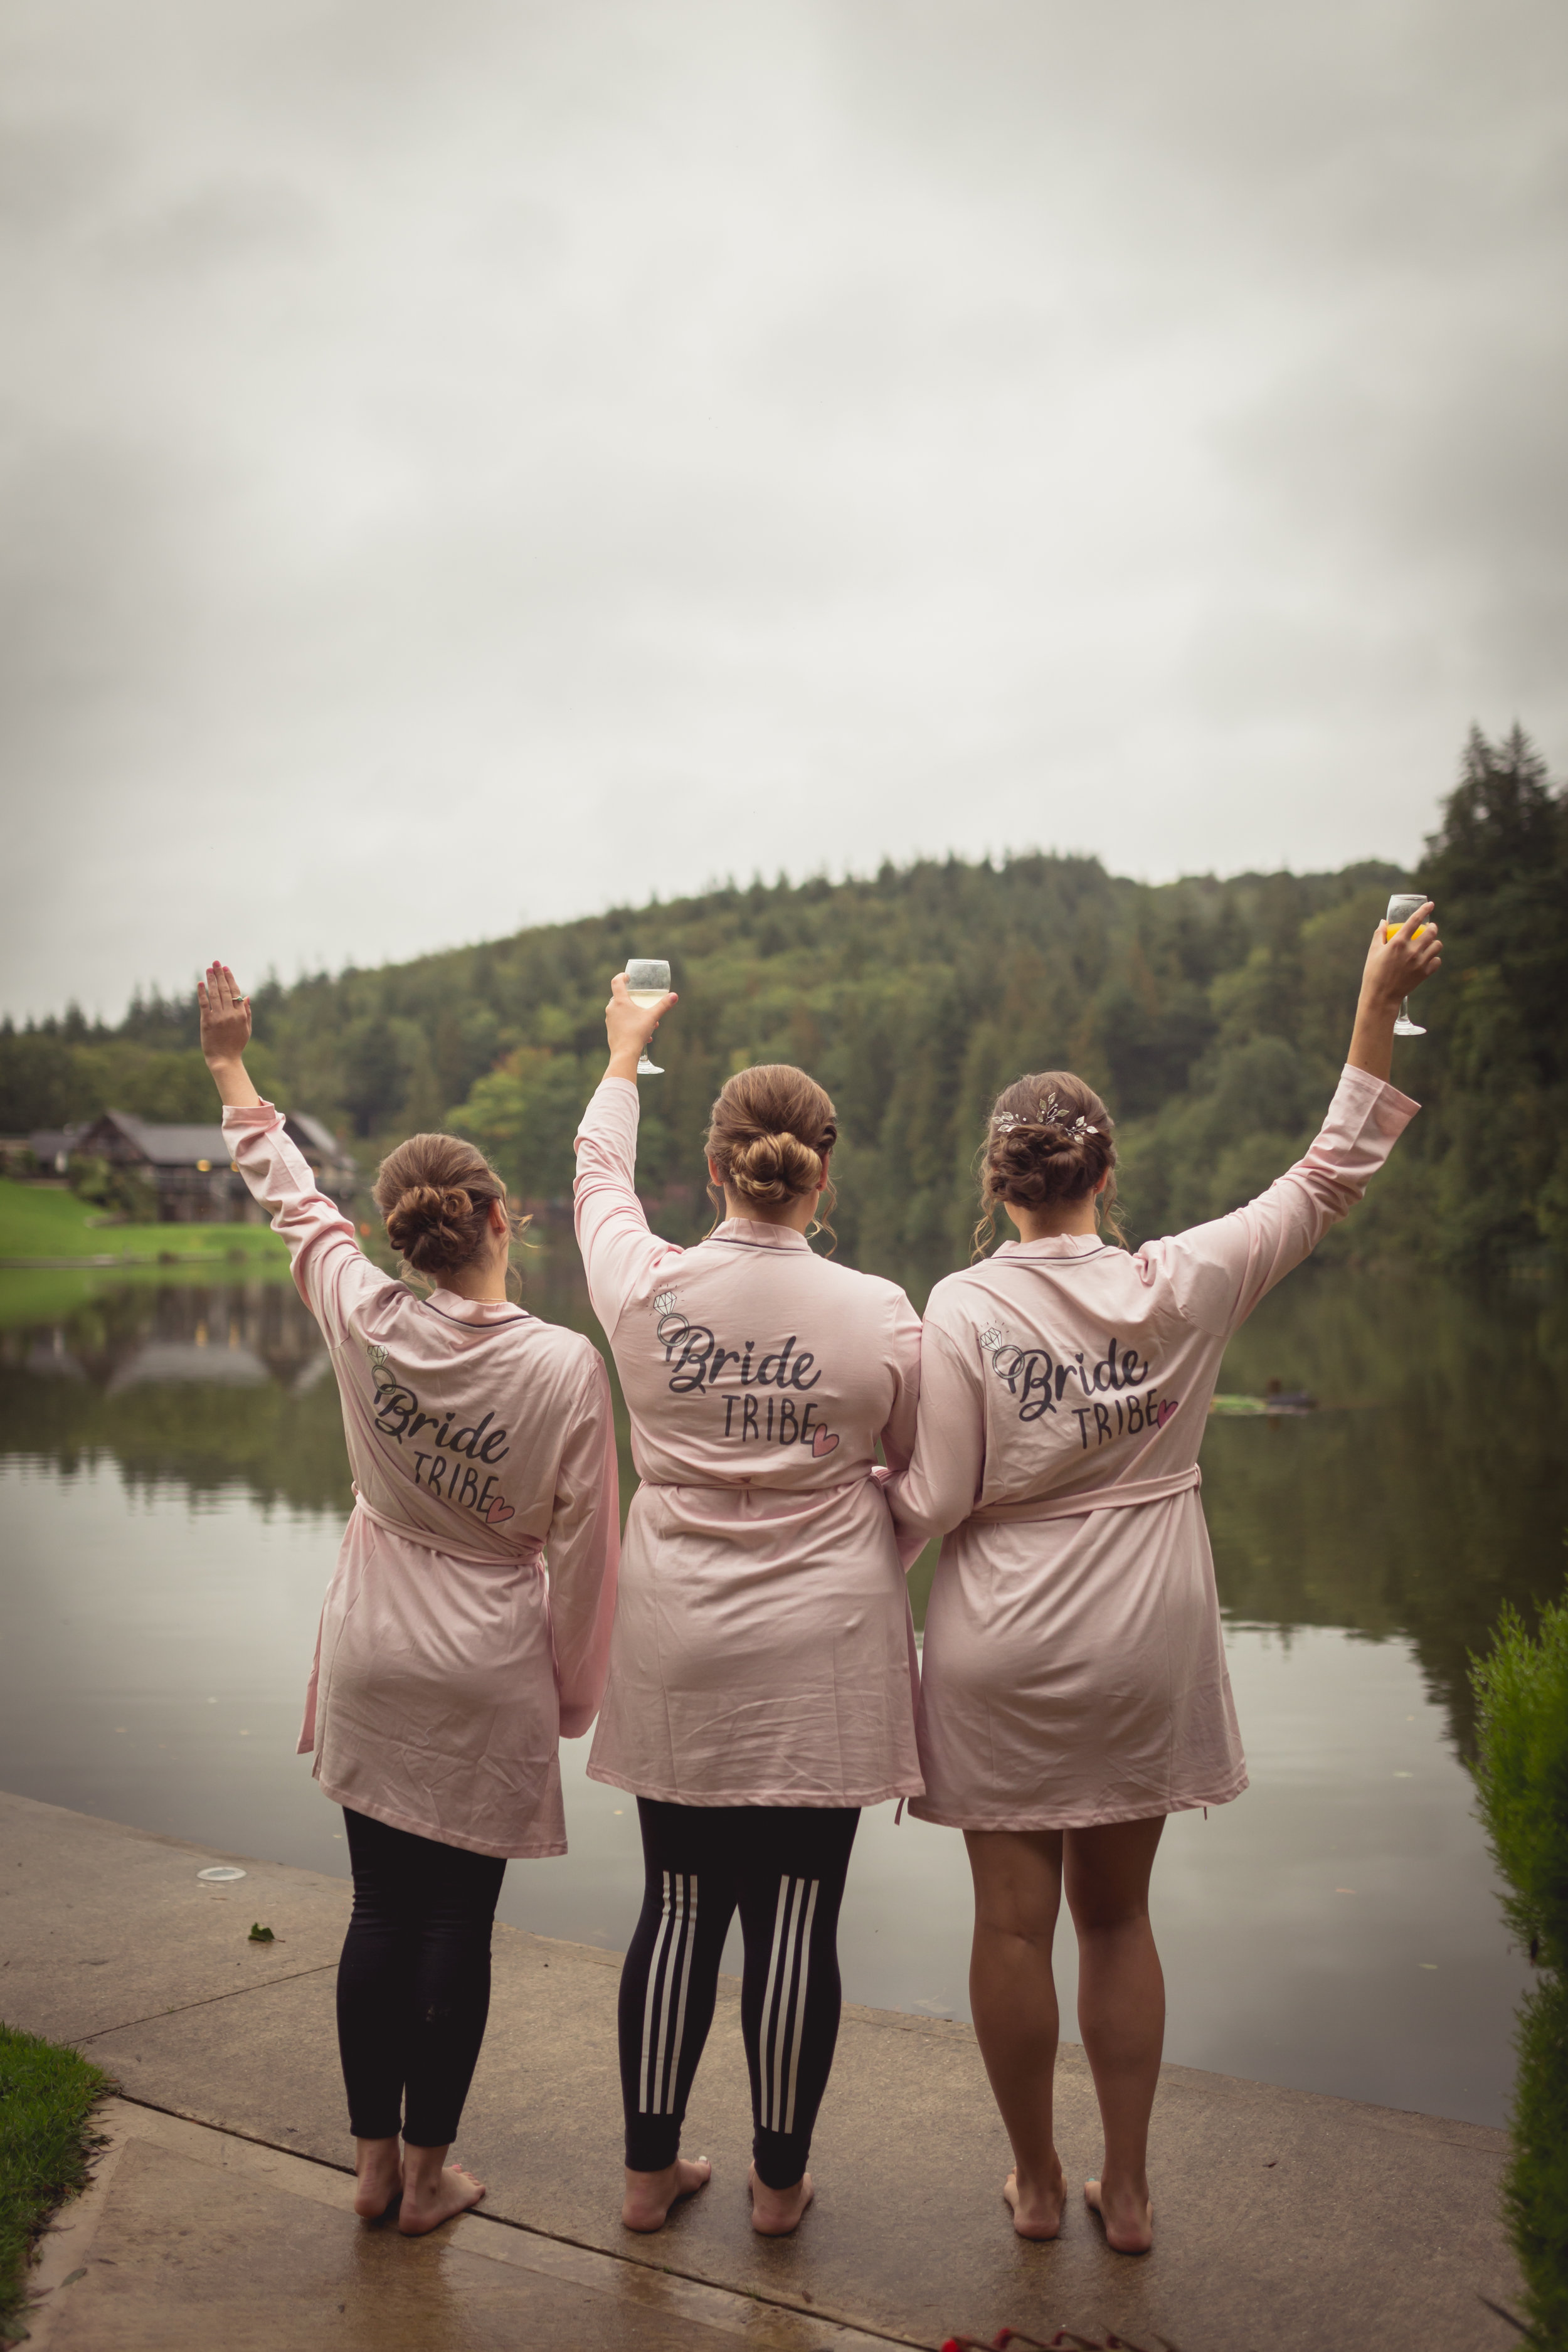 Bridemaids raising a glass of champagne ovelooking the lake at Canada Lodge a south wales wedding venue